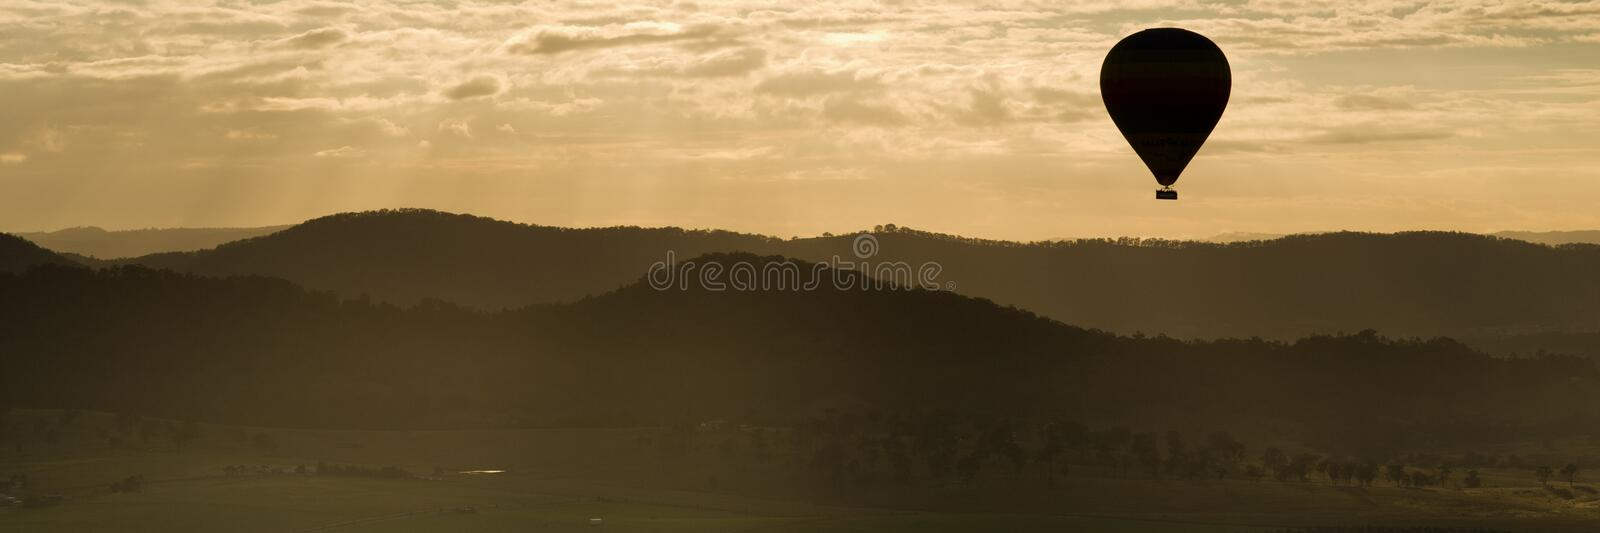 Hot air balloon silhouette. Silhouette panorama of a hot air balloon floating over hilly countryside at sunset royalty free stock photography